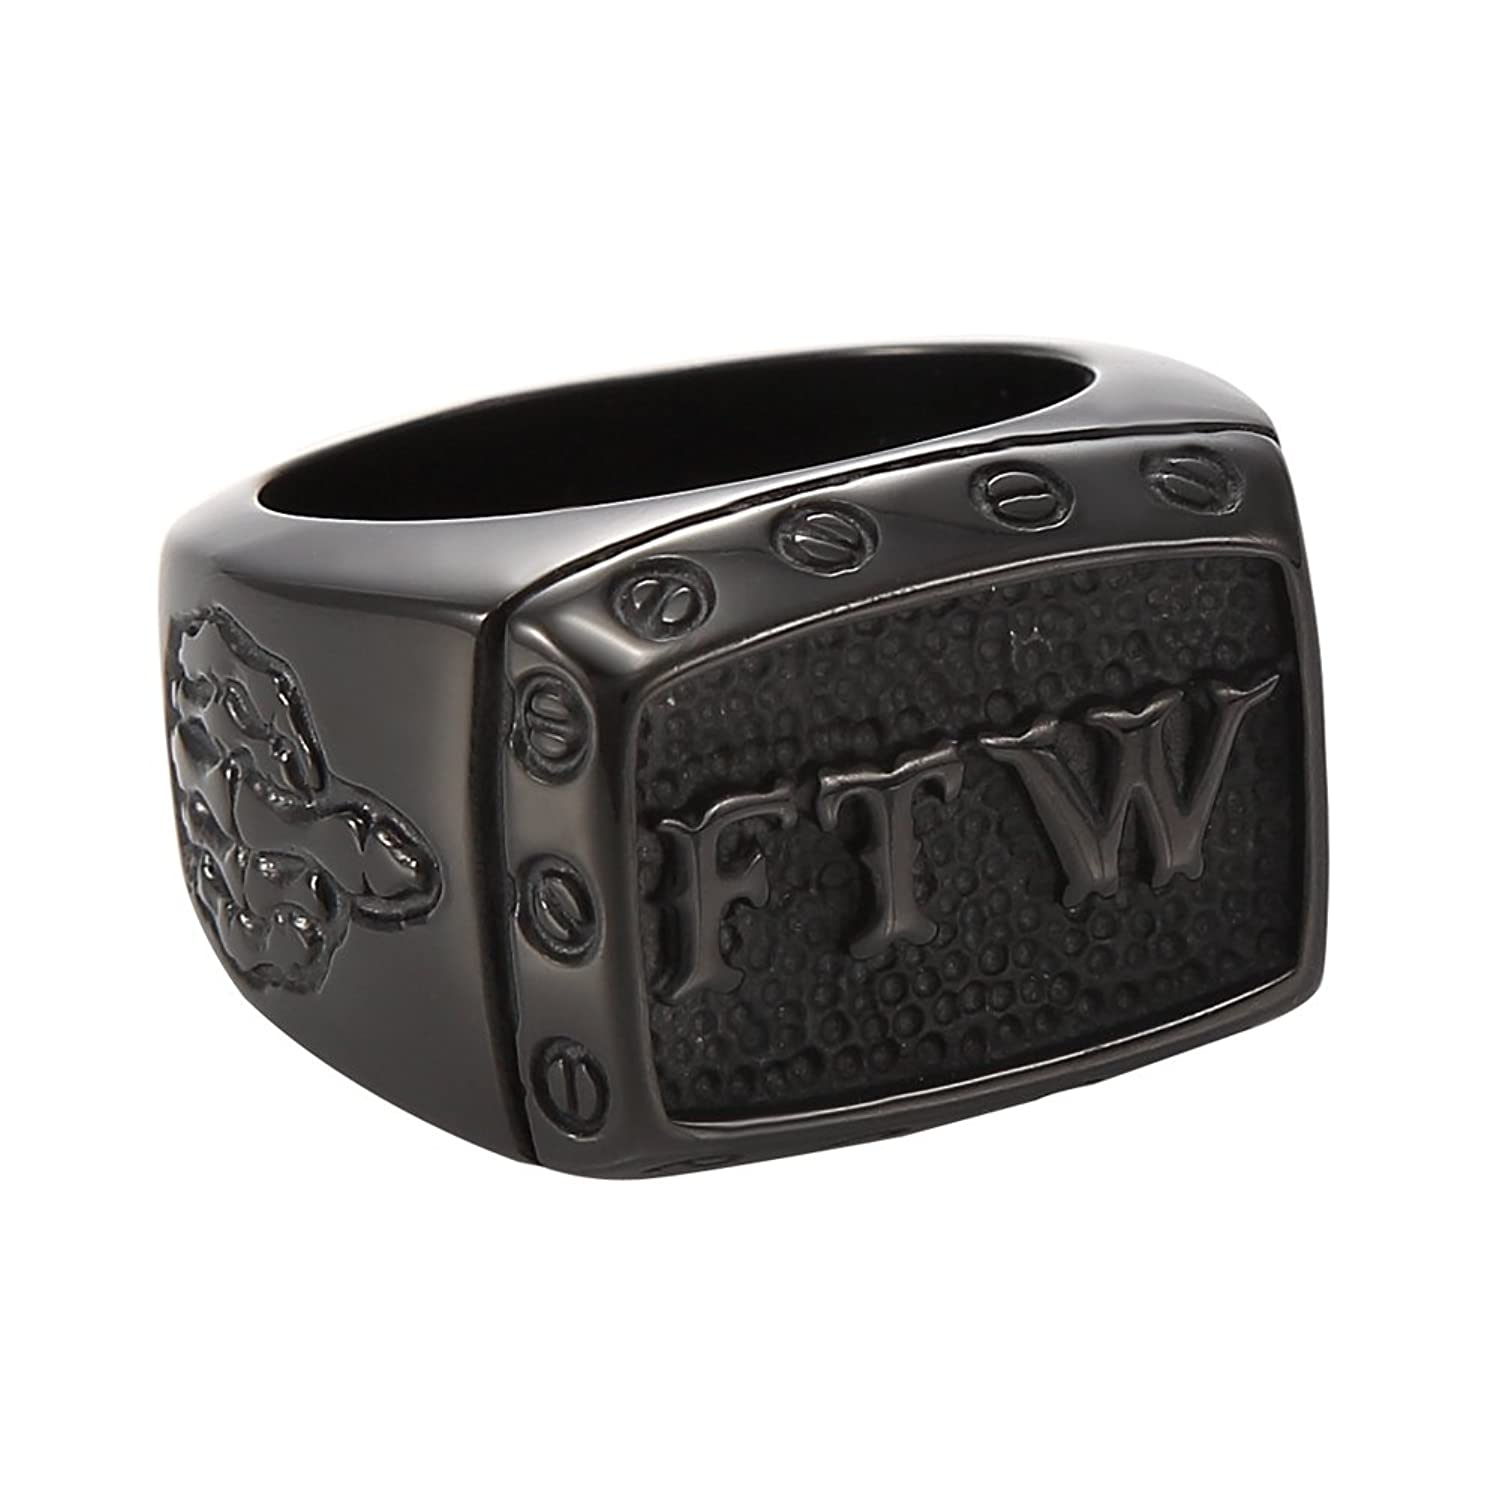 MOWEN Mens Stainless Steel Vintage FTW Biker Middle Finger Ring,Black